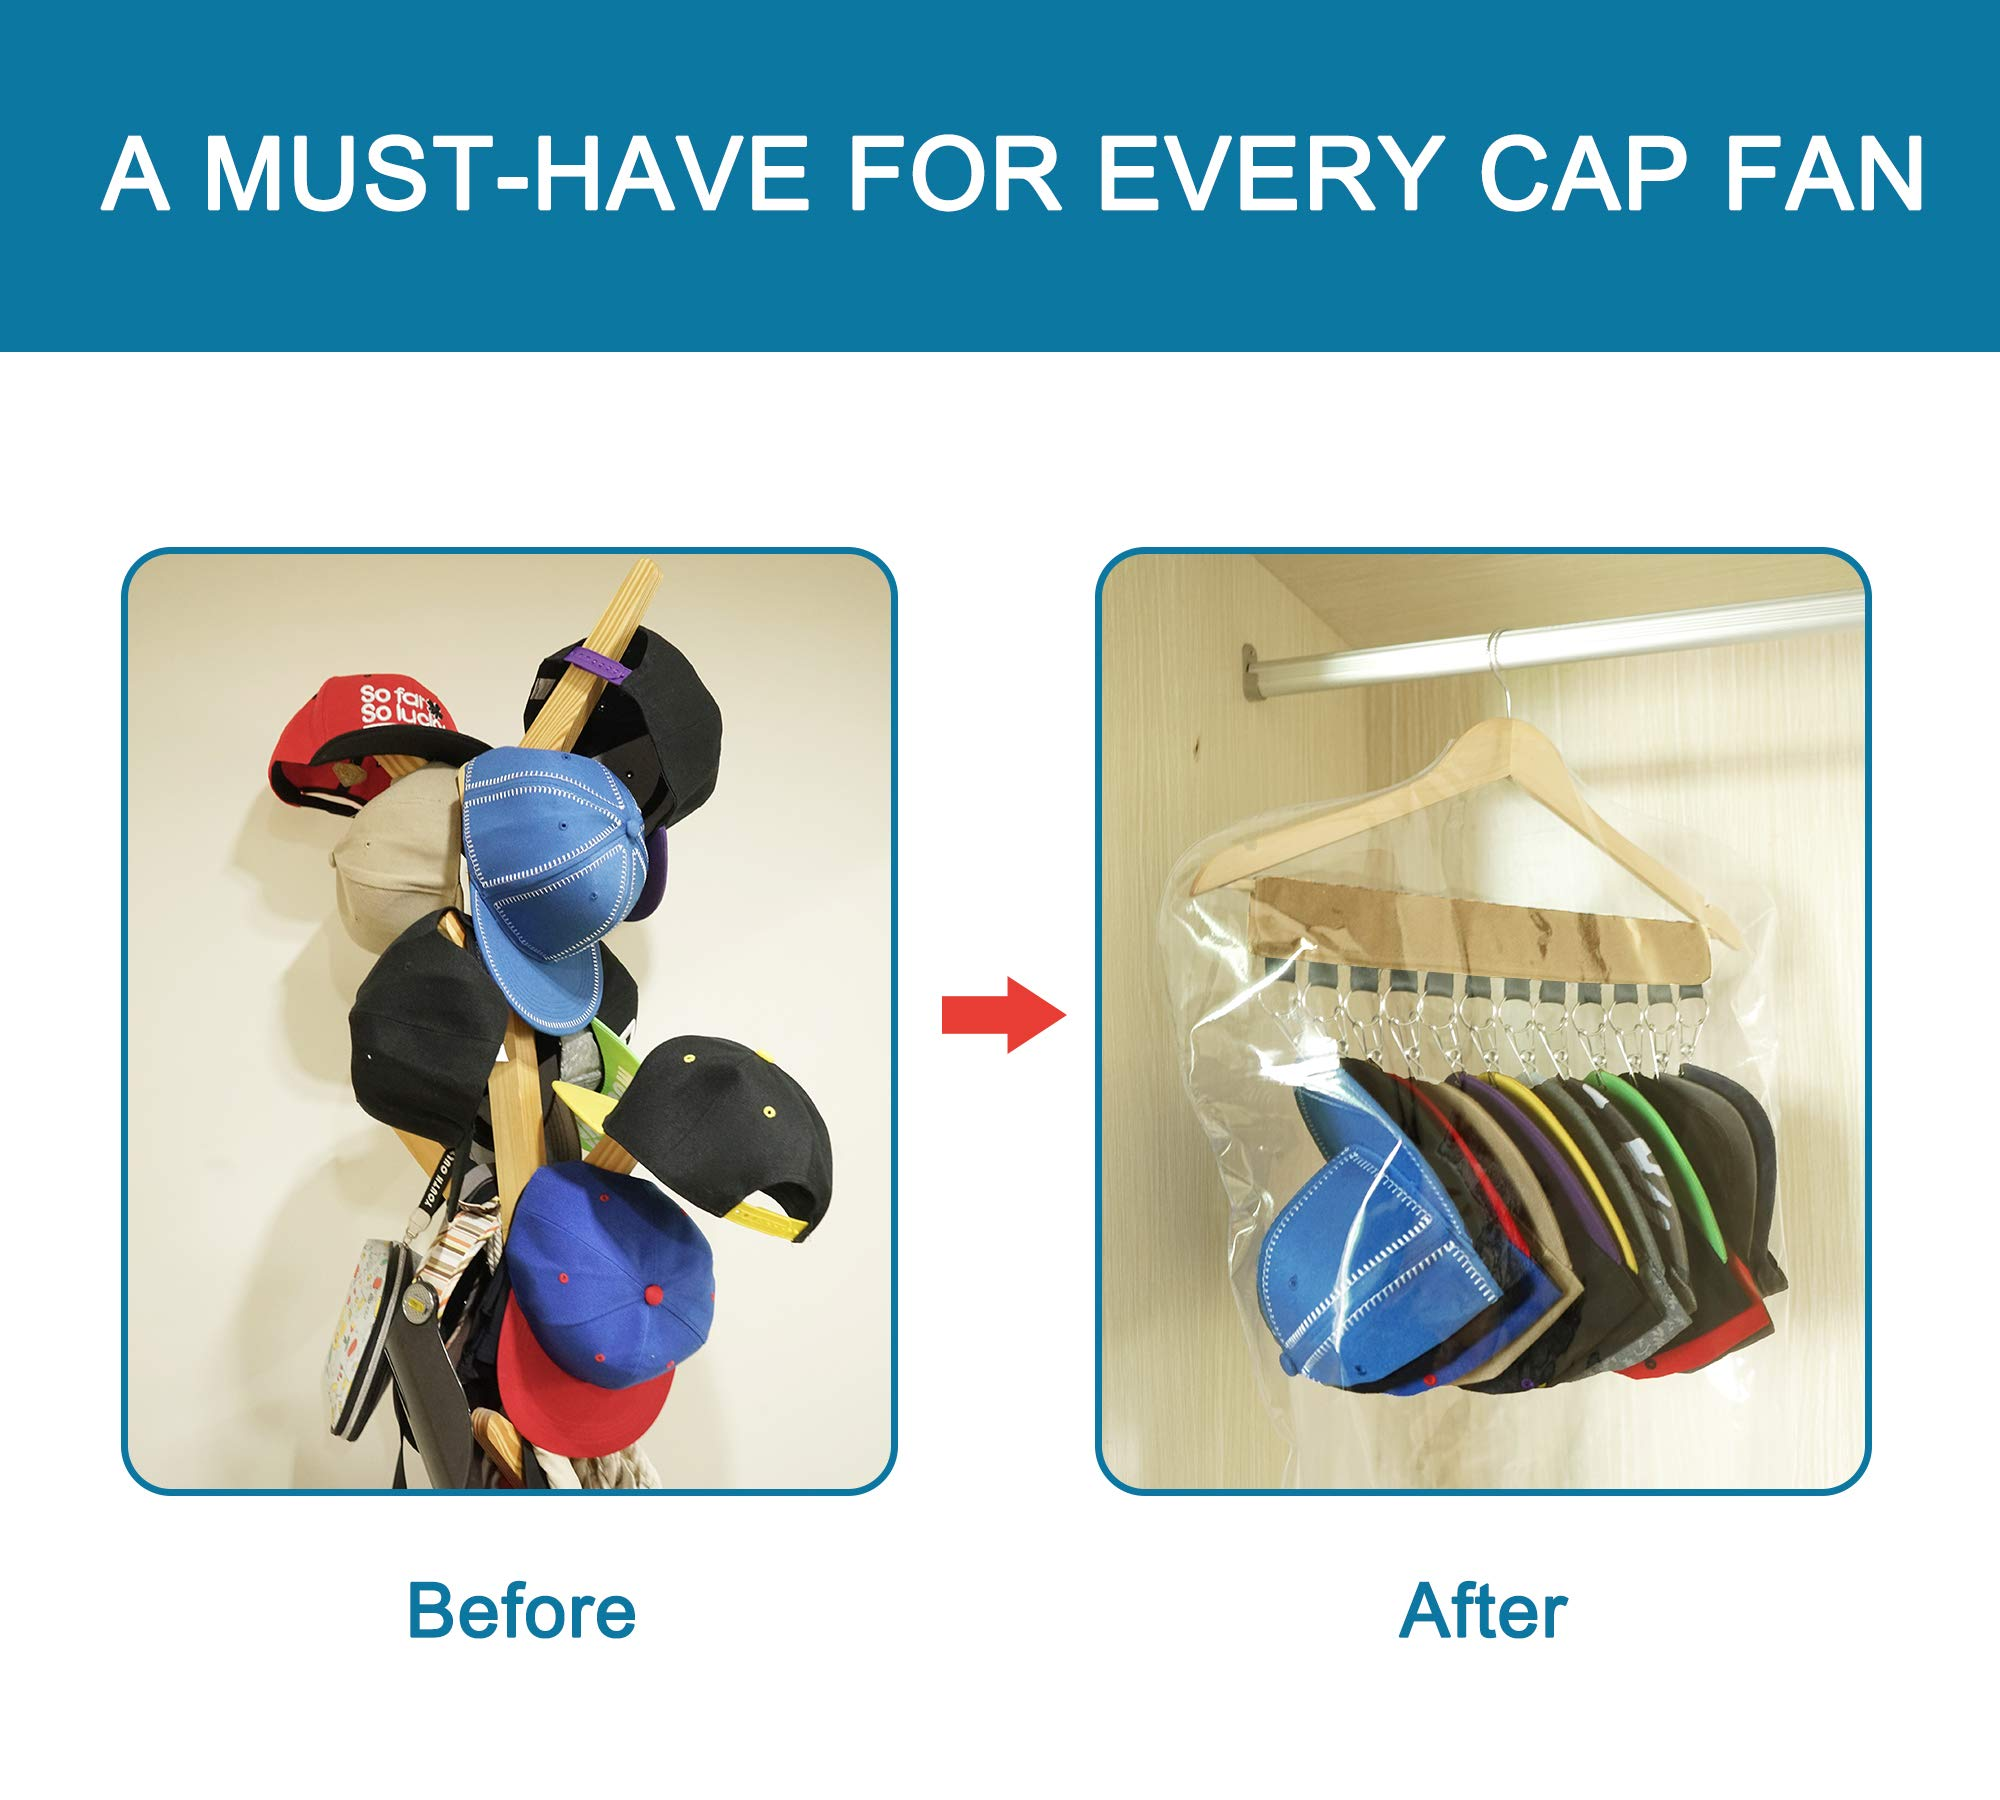 B.SHINE Hat Rack Cap Organizer - 12 Clips Hanging Baseball Caps Holder with Dust Cover